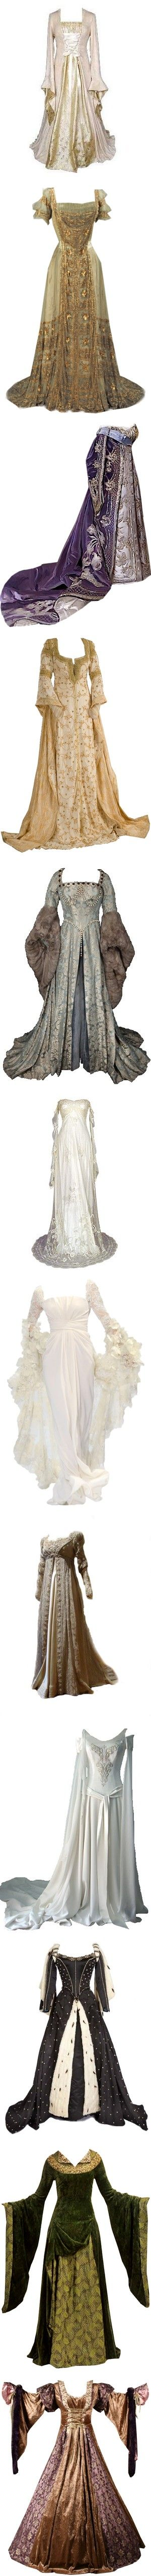 Victorian & Midevil Dresses by shaelyn-gibson on Polyvore featuring dresses, gowns, medieval, costume, long dresses, vestidos, victorian, victorian dress, brown dress and victorian gown